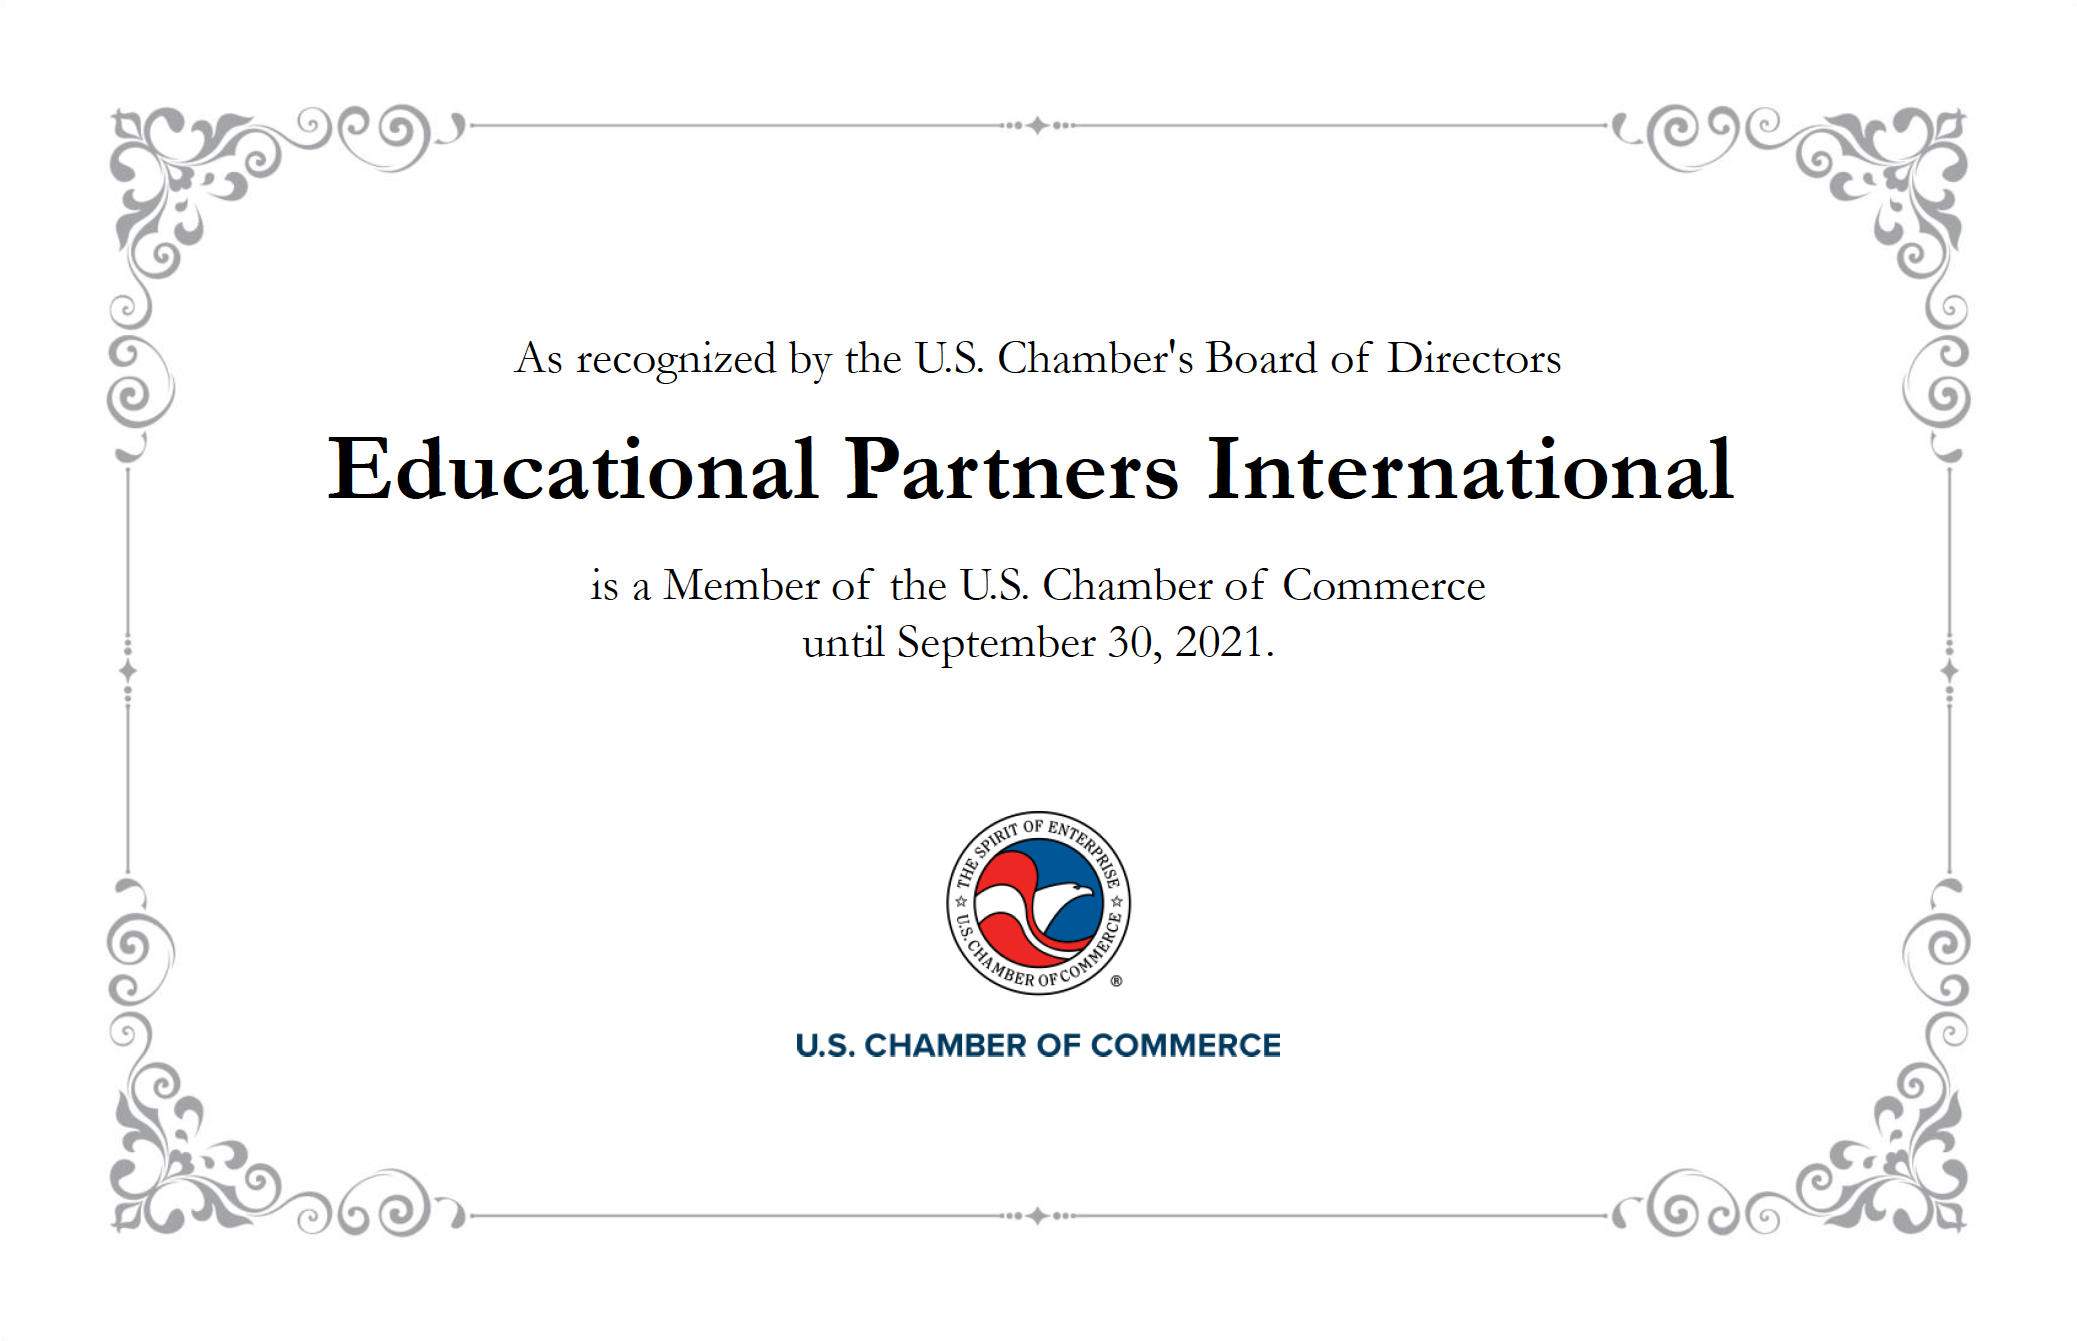 EPI is a member of the U.S. Chamber of Commerce